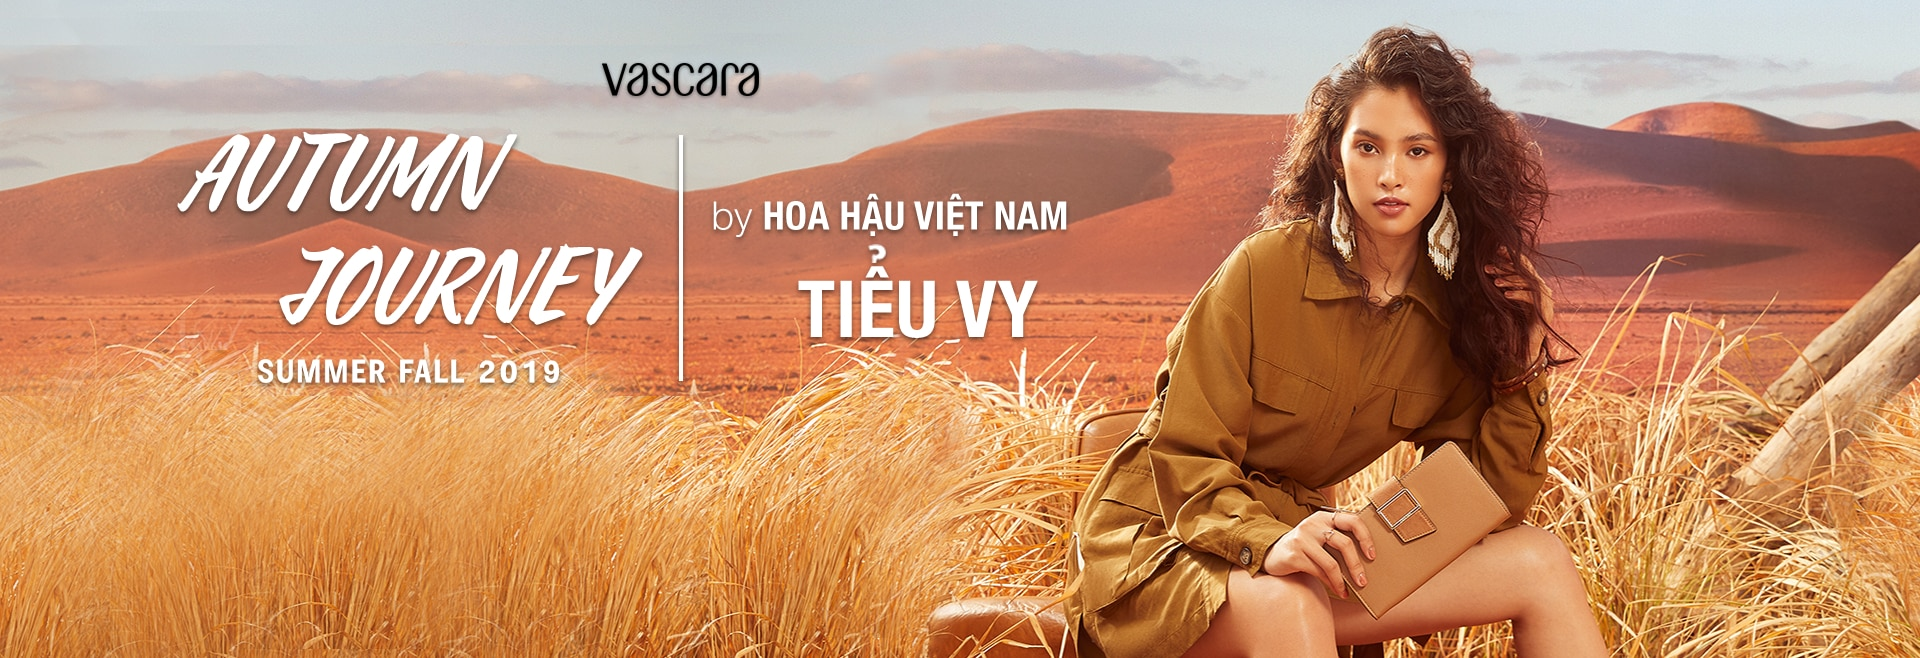 summer fall 2019 vascara